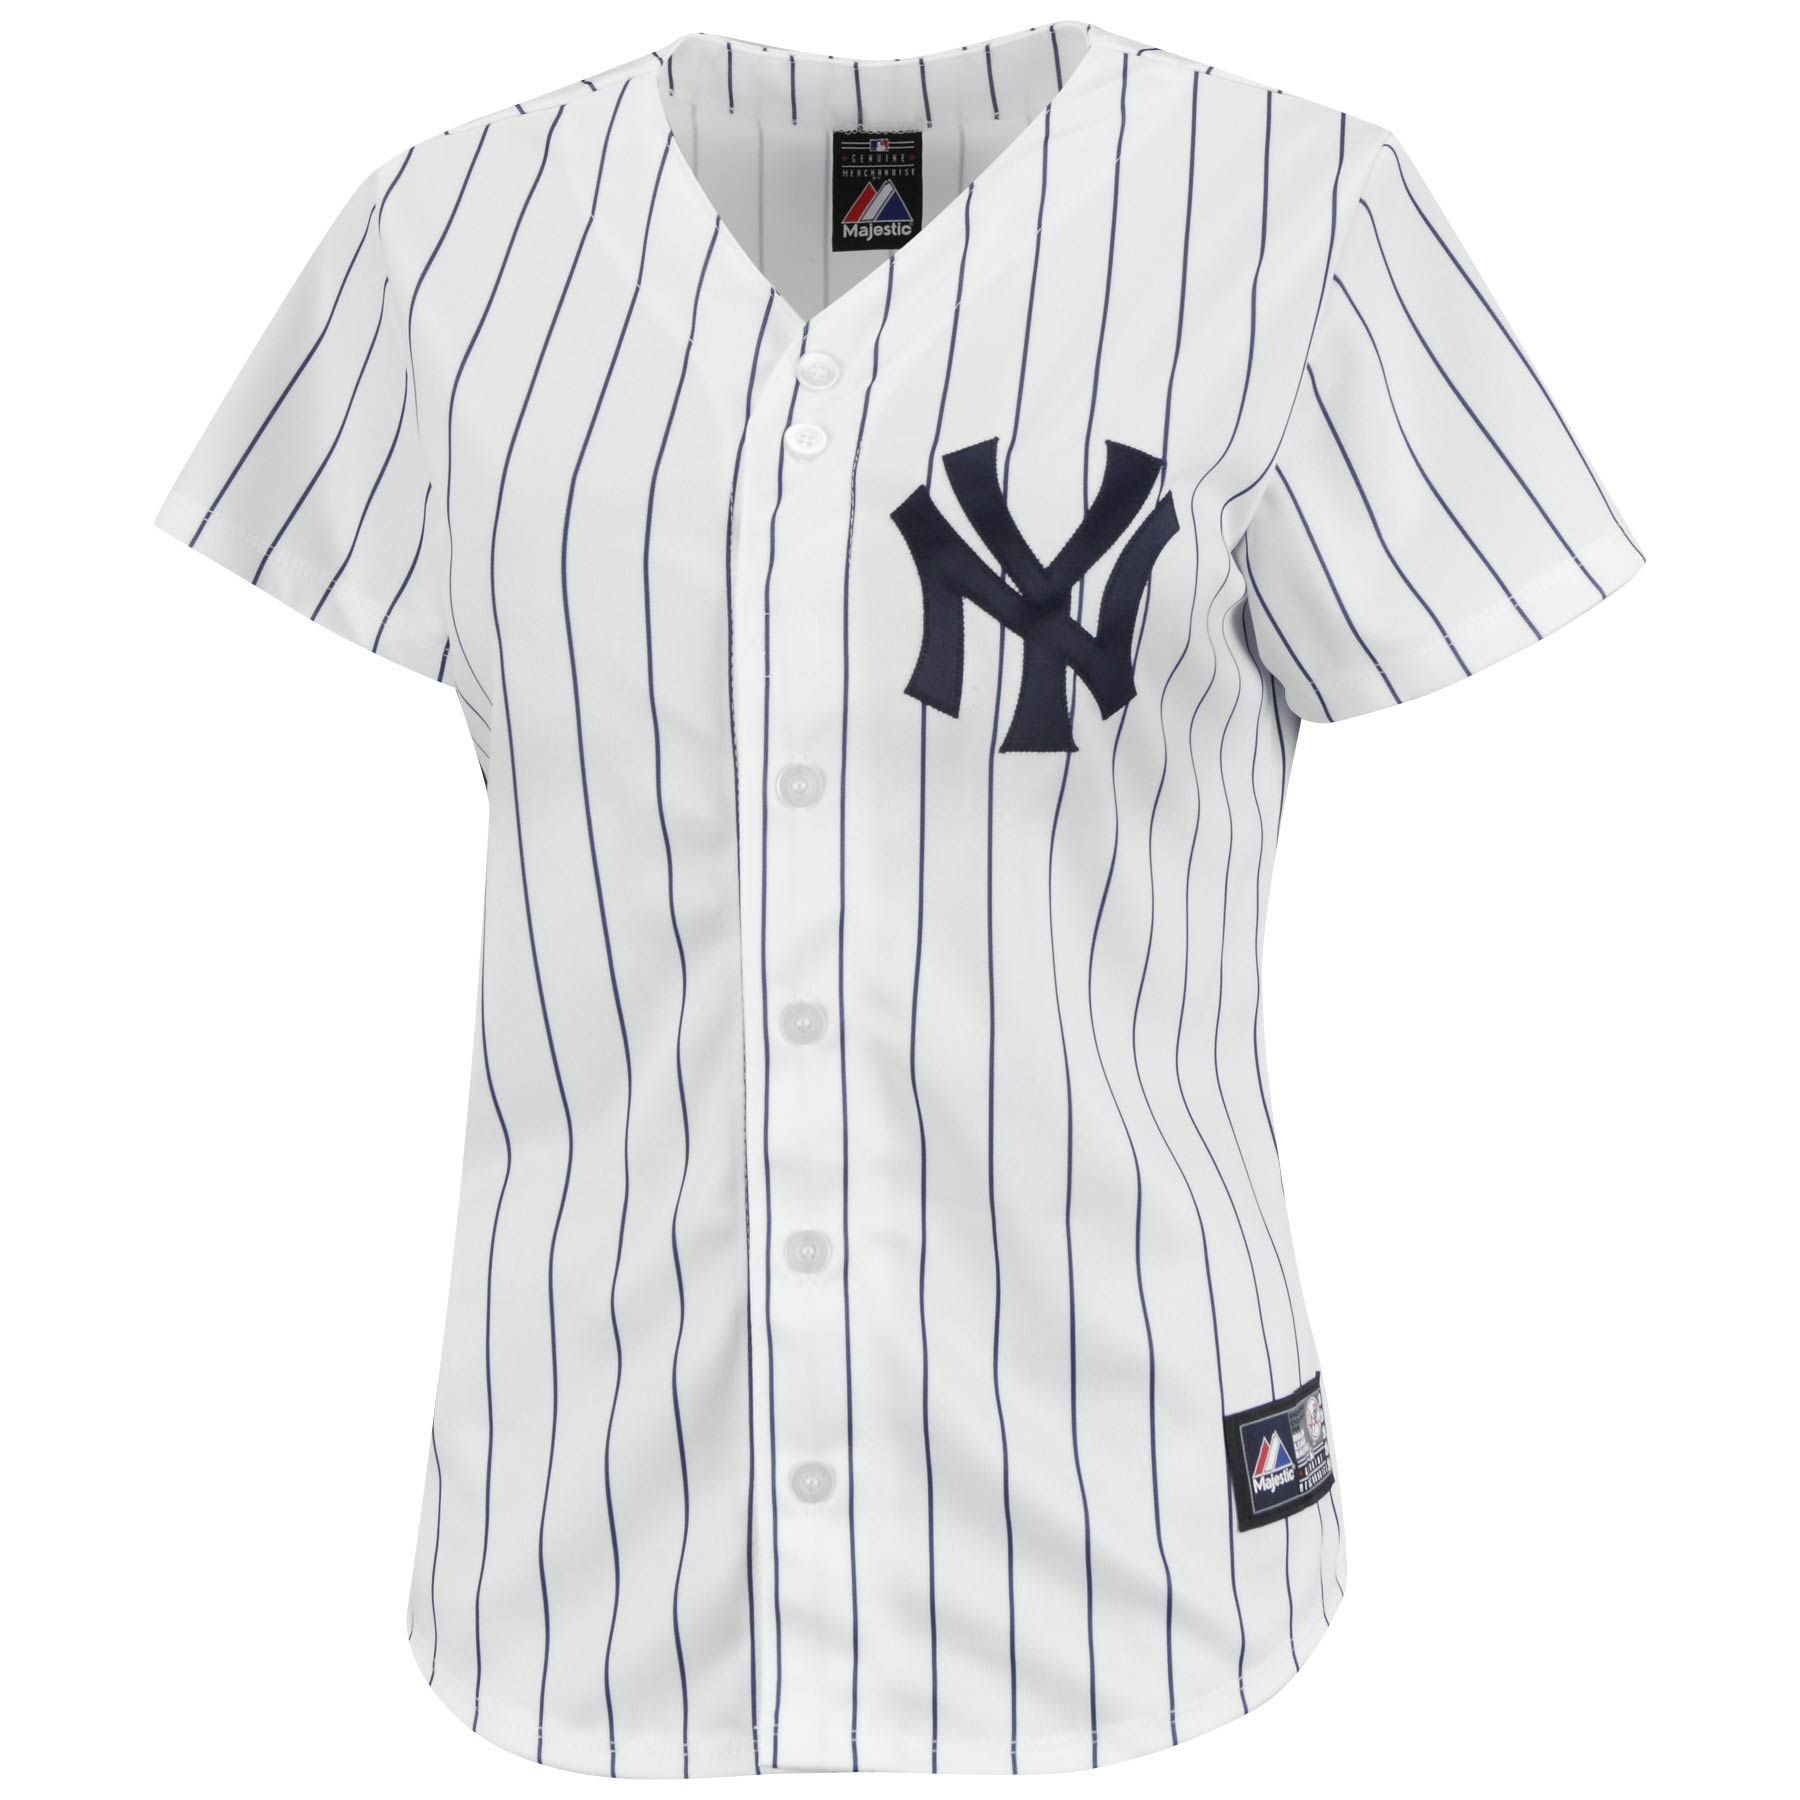 Baseball Jersey for Women | New York Yankees Women\u0027s Replica Home MLB  Baseball Jersey